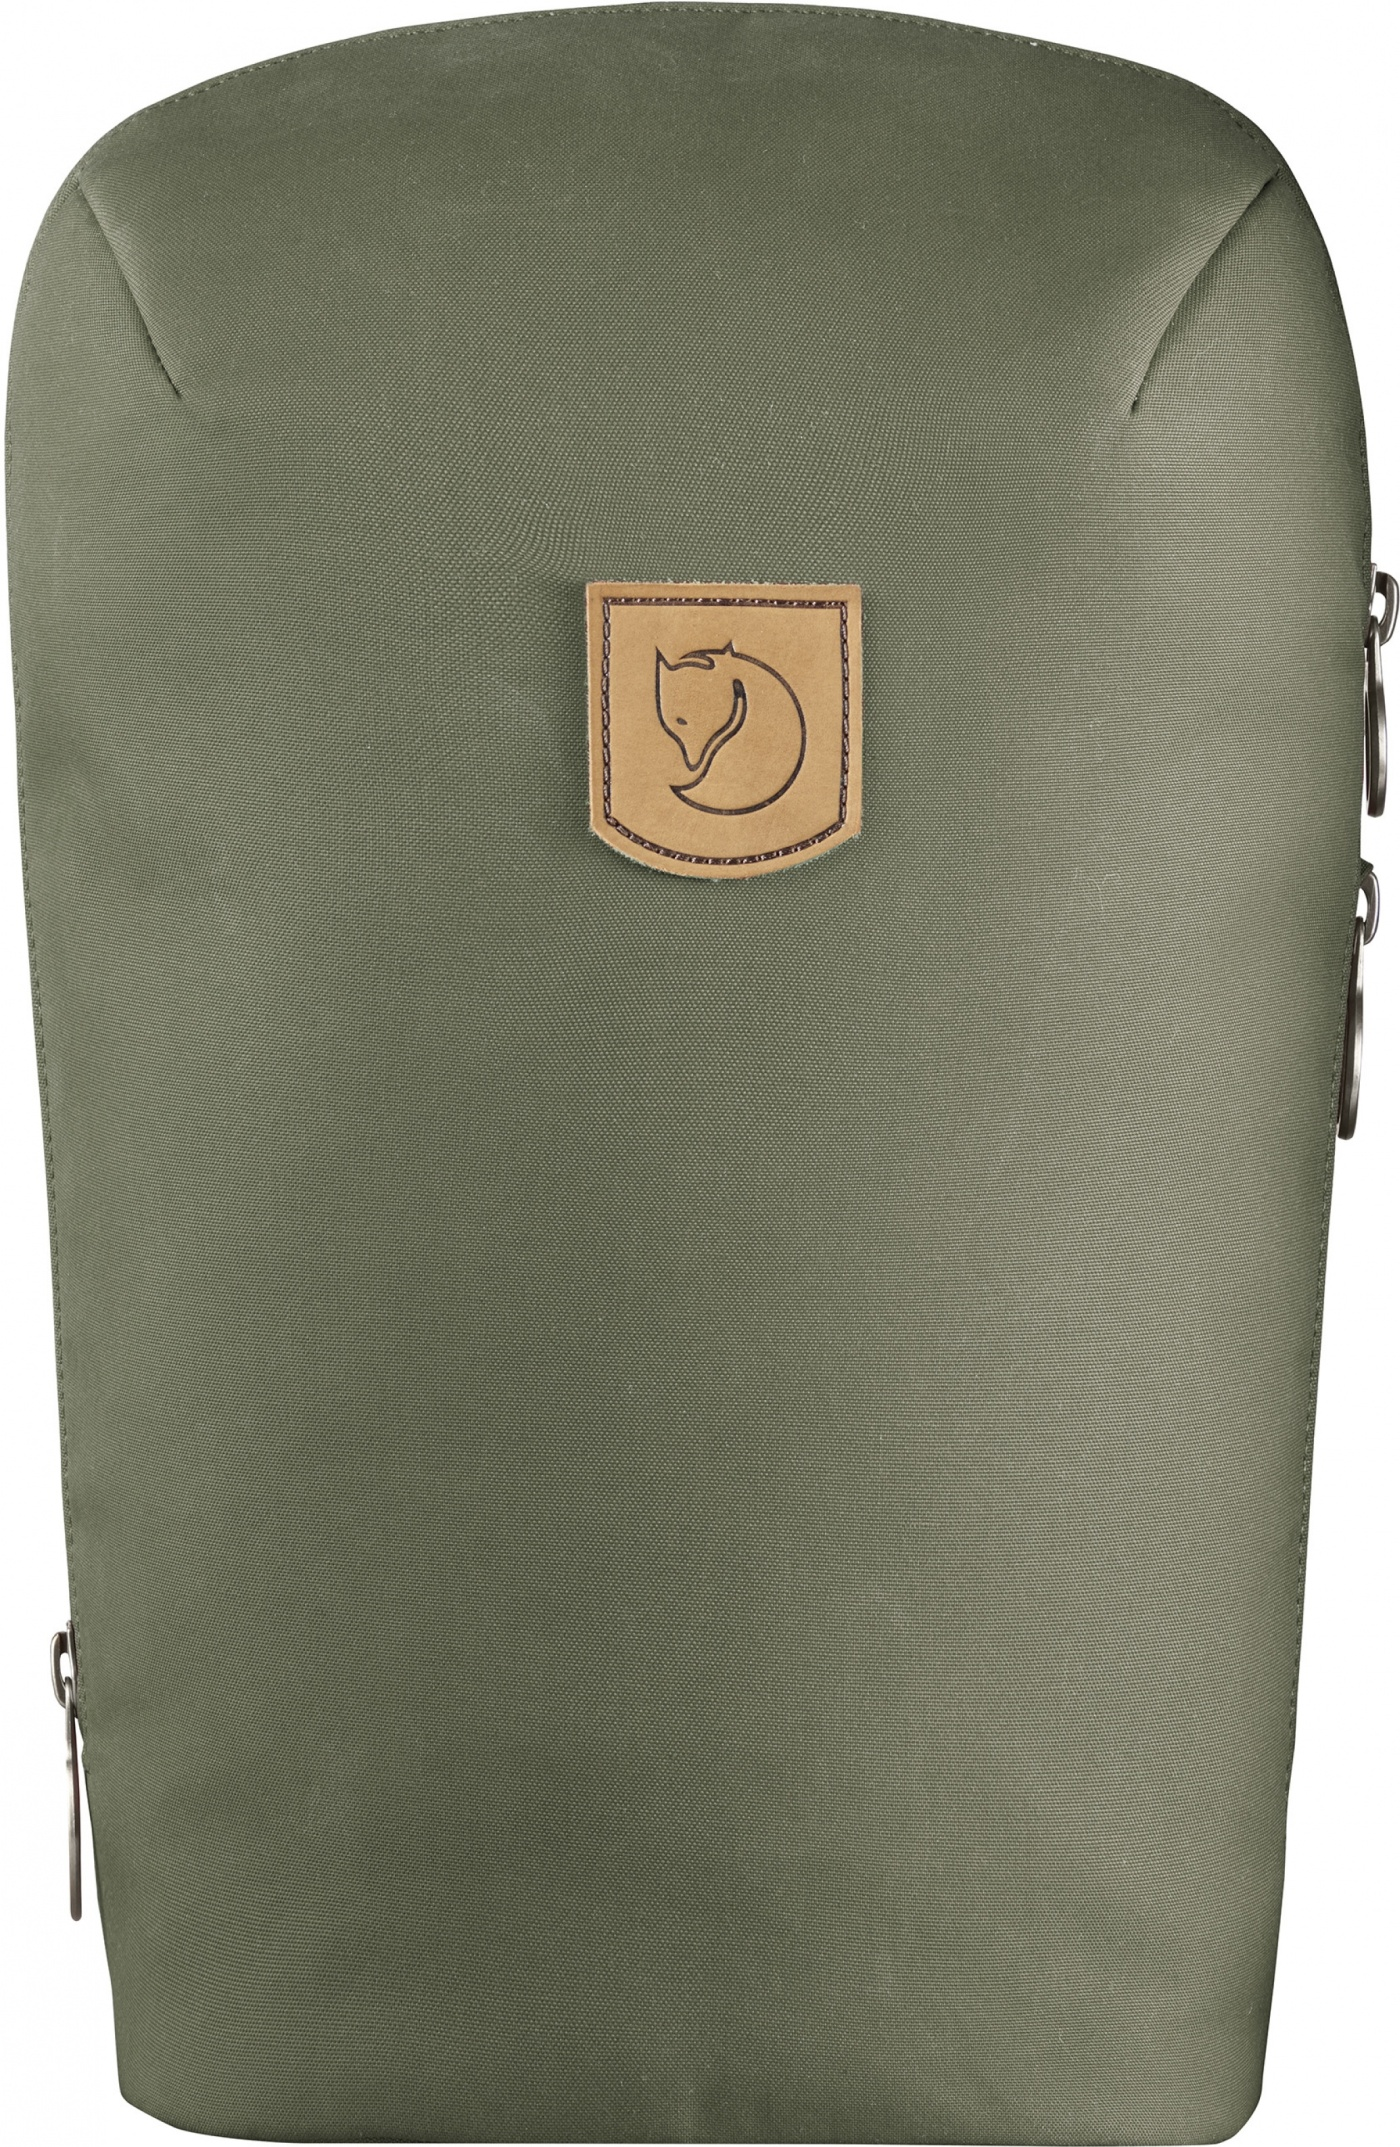 FjallRaven Kiruna Backpack Green-30